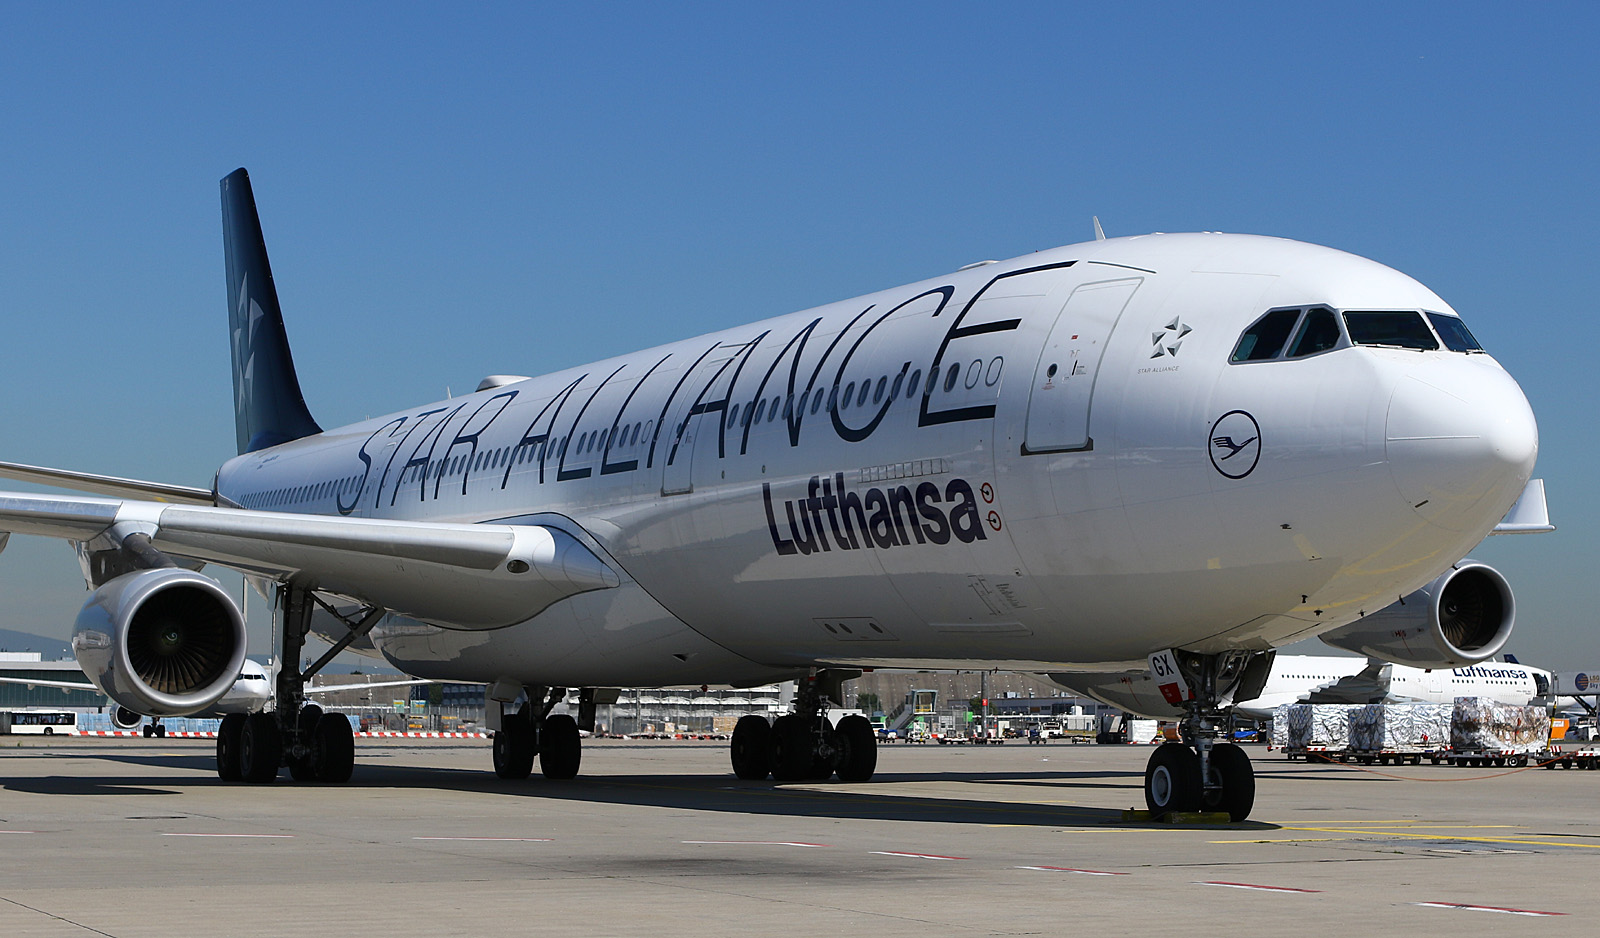 Lufthansa Star Alliance A340-300 at Frankfurt Airport